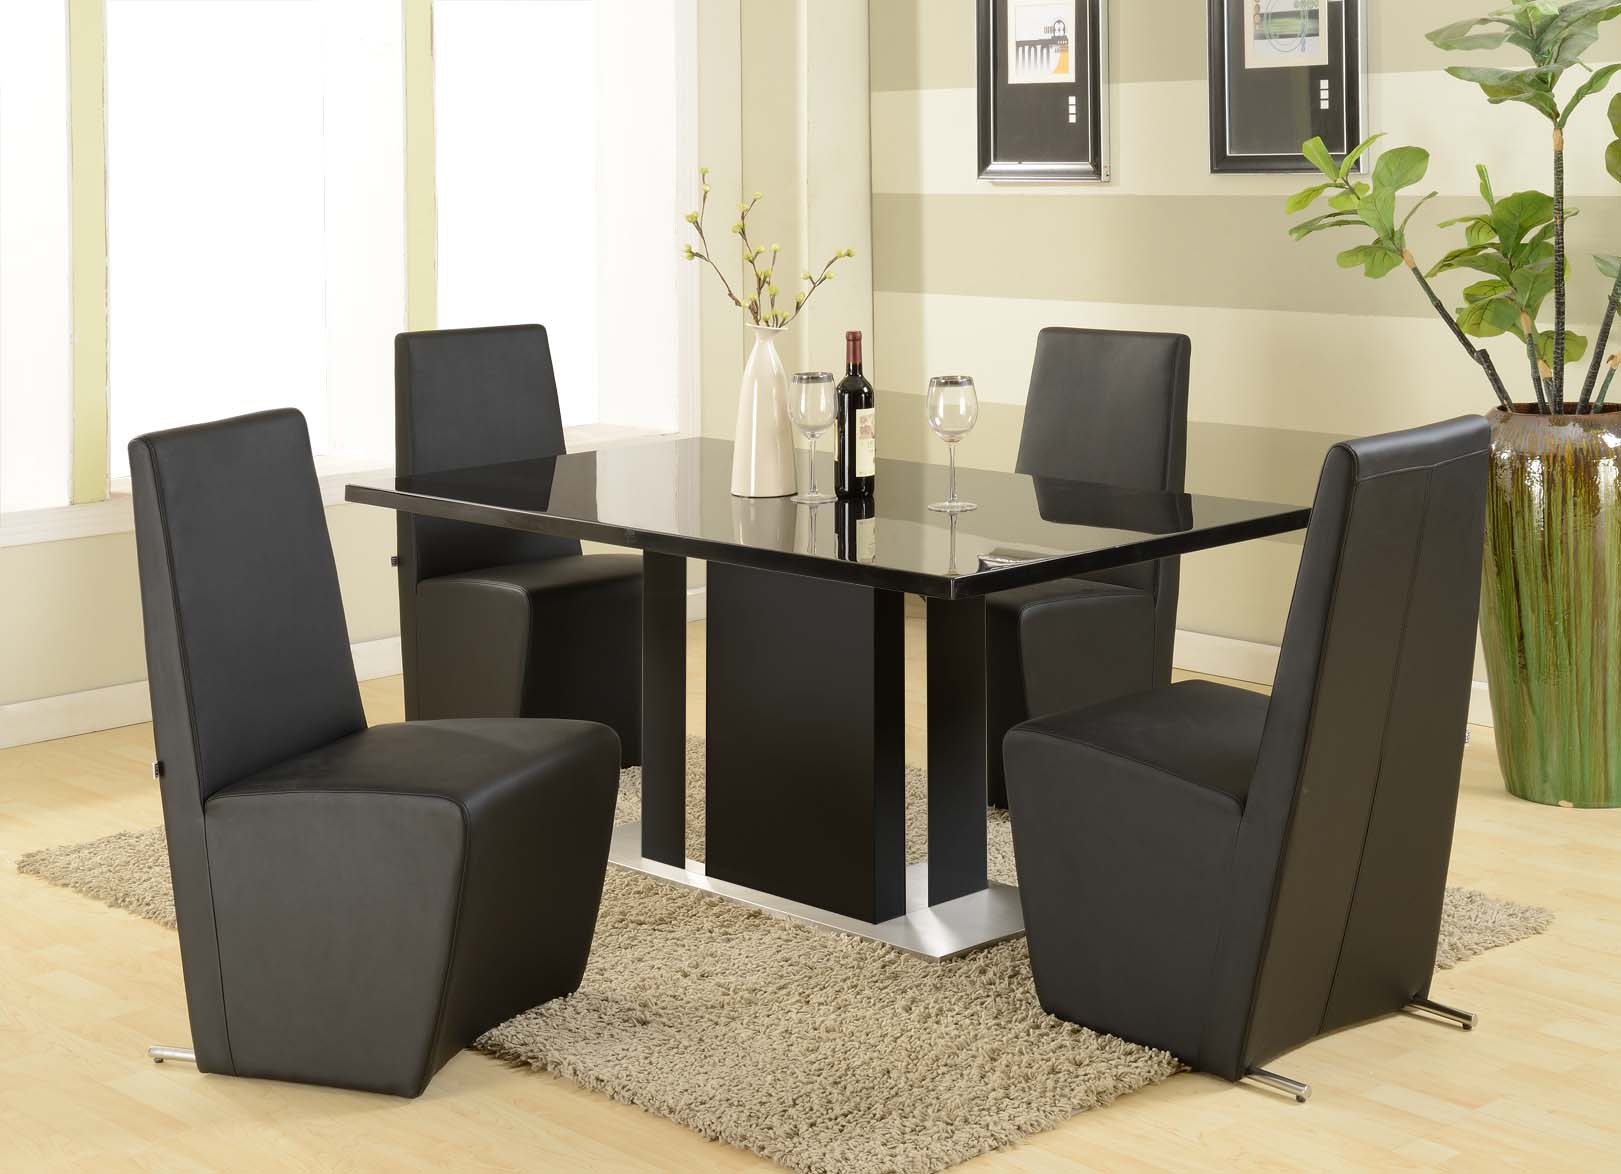 Modern furniture table home design roosa for Kitchen table and chairs set